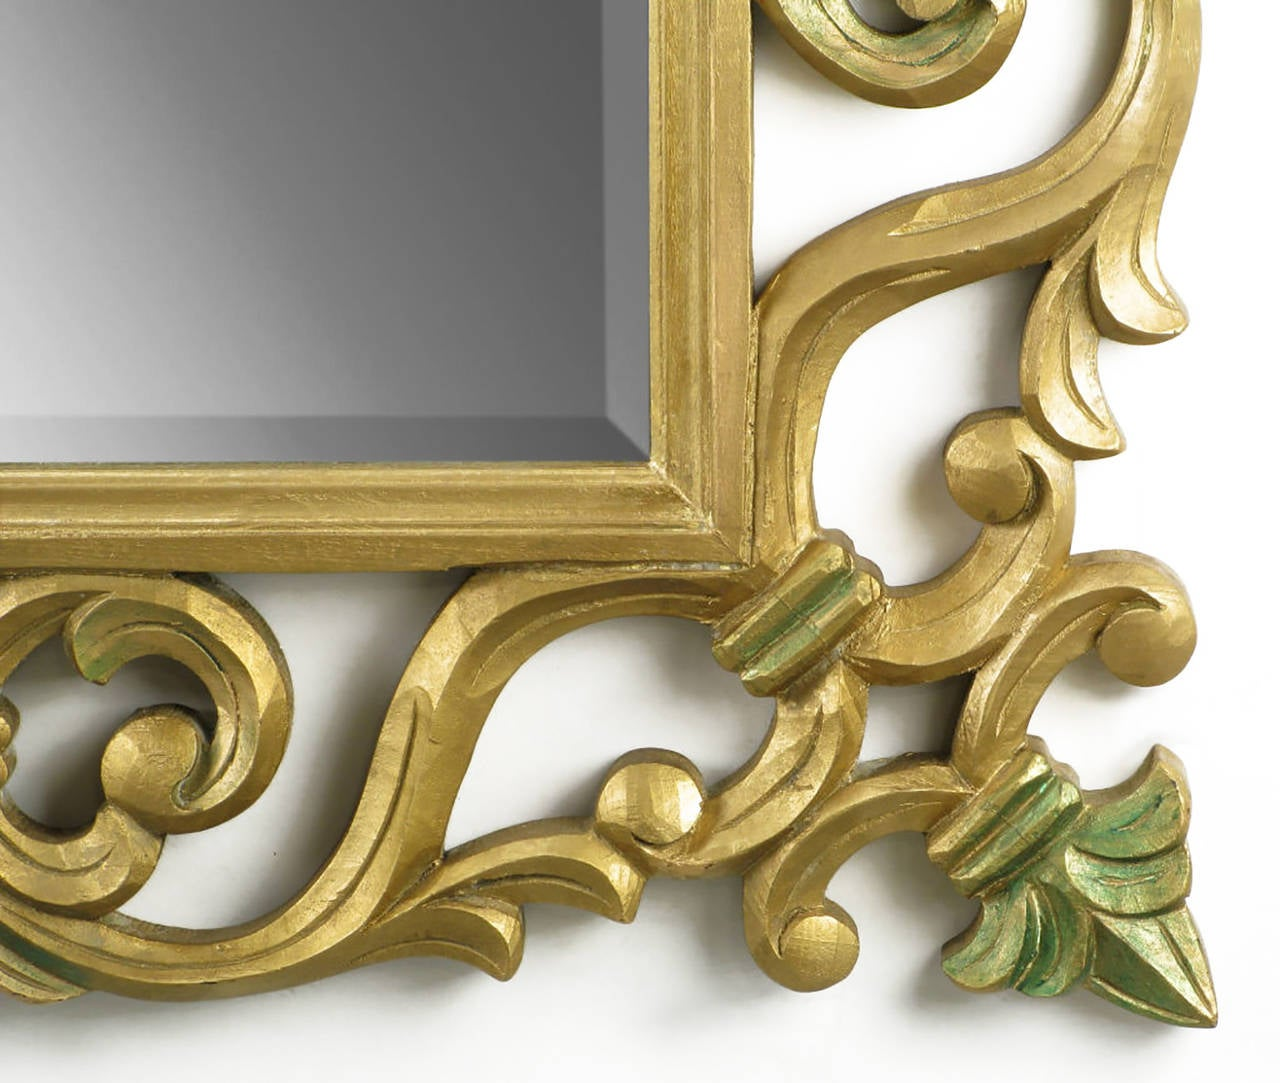 American Carved Giltwood Mirror With Fleur-de-Lis Detail For Sale